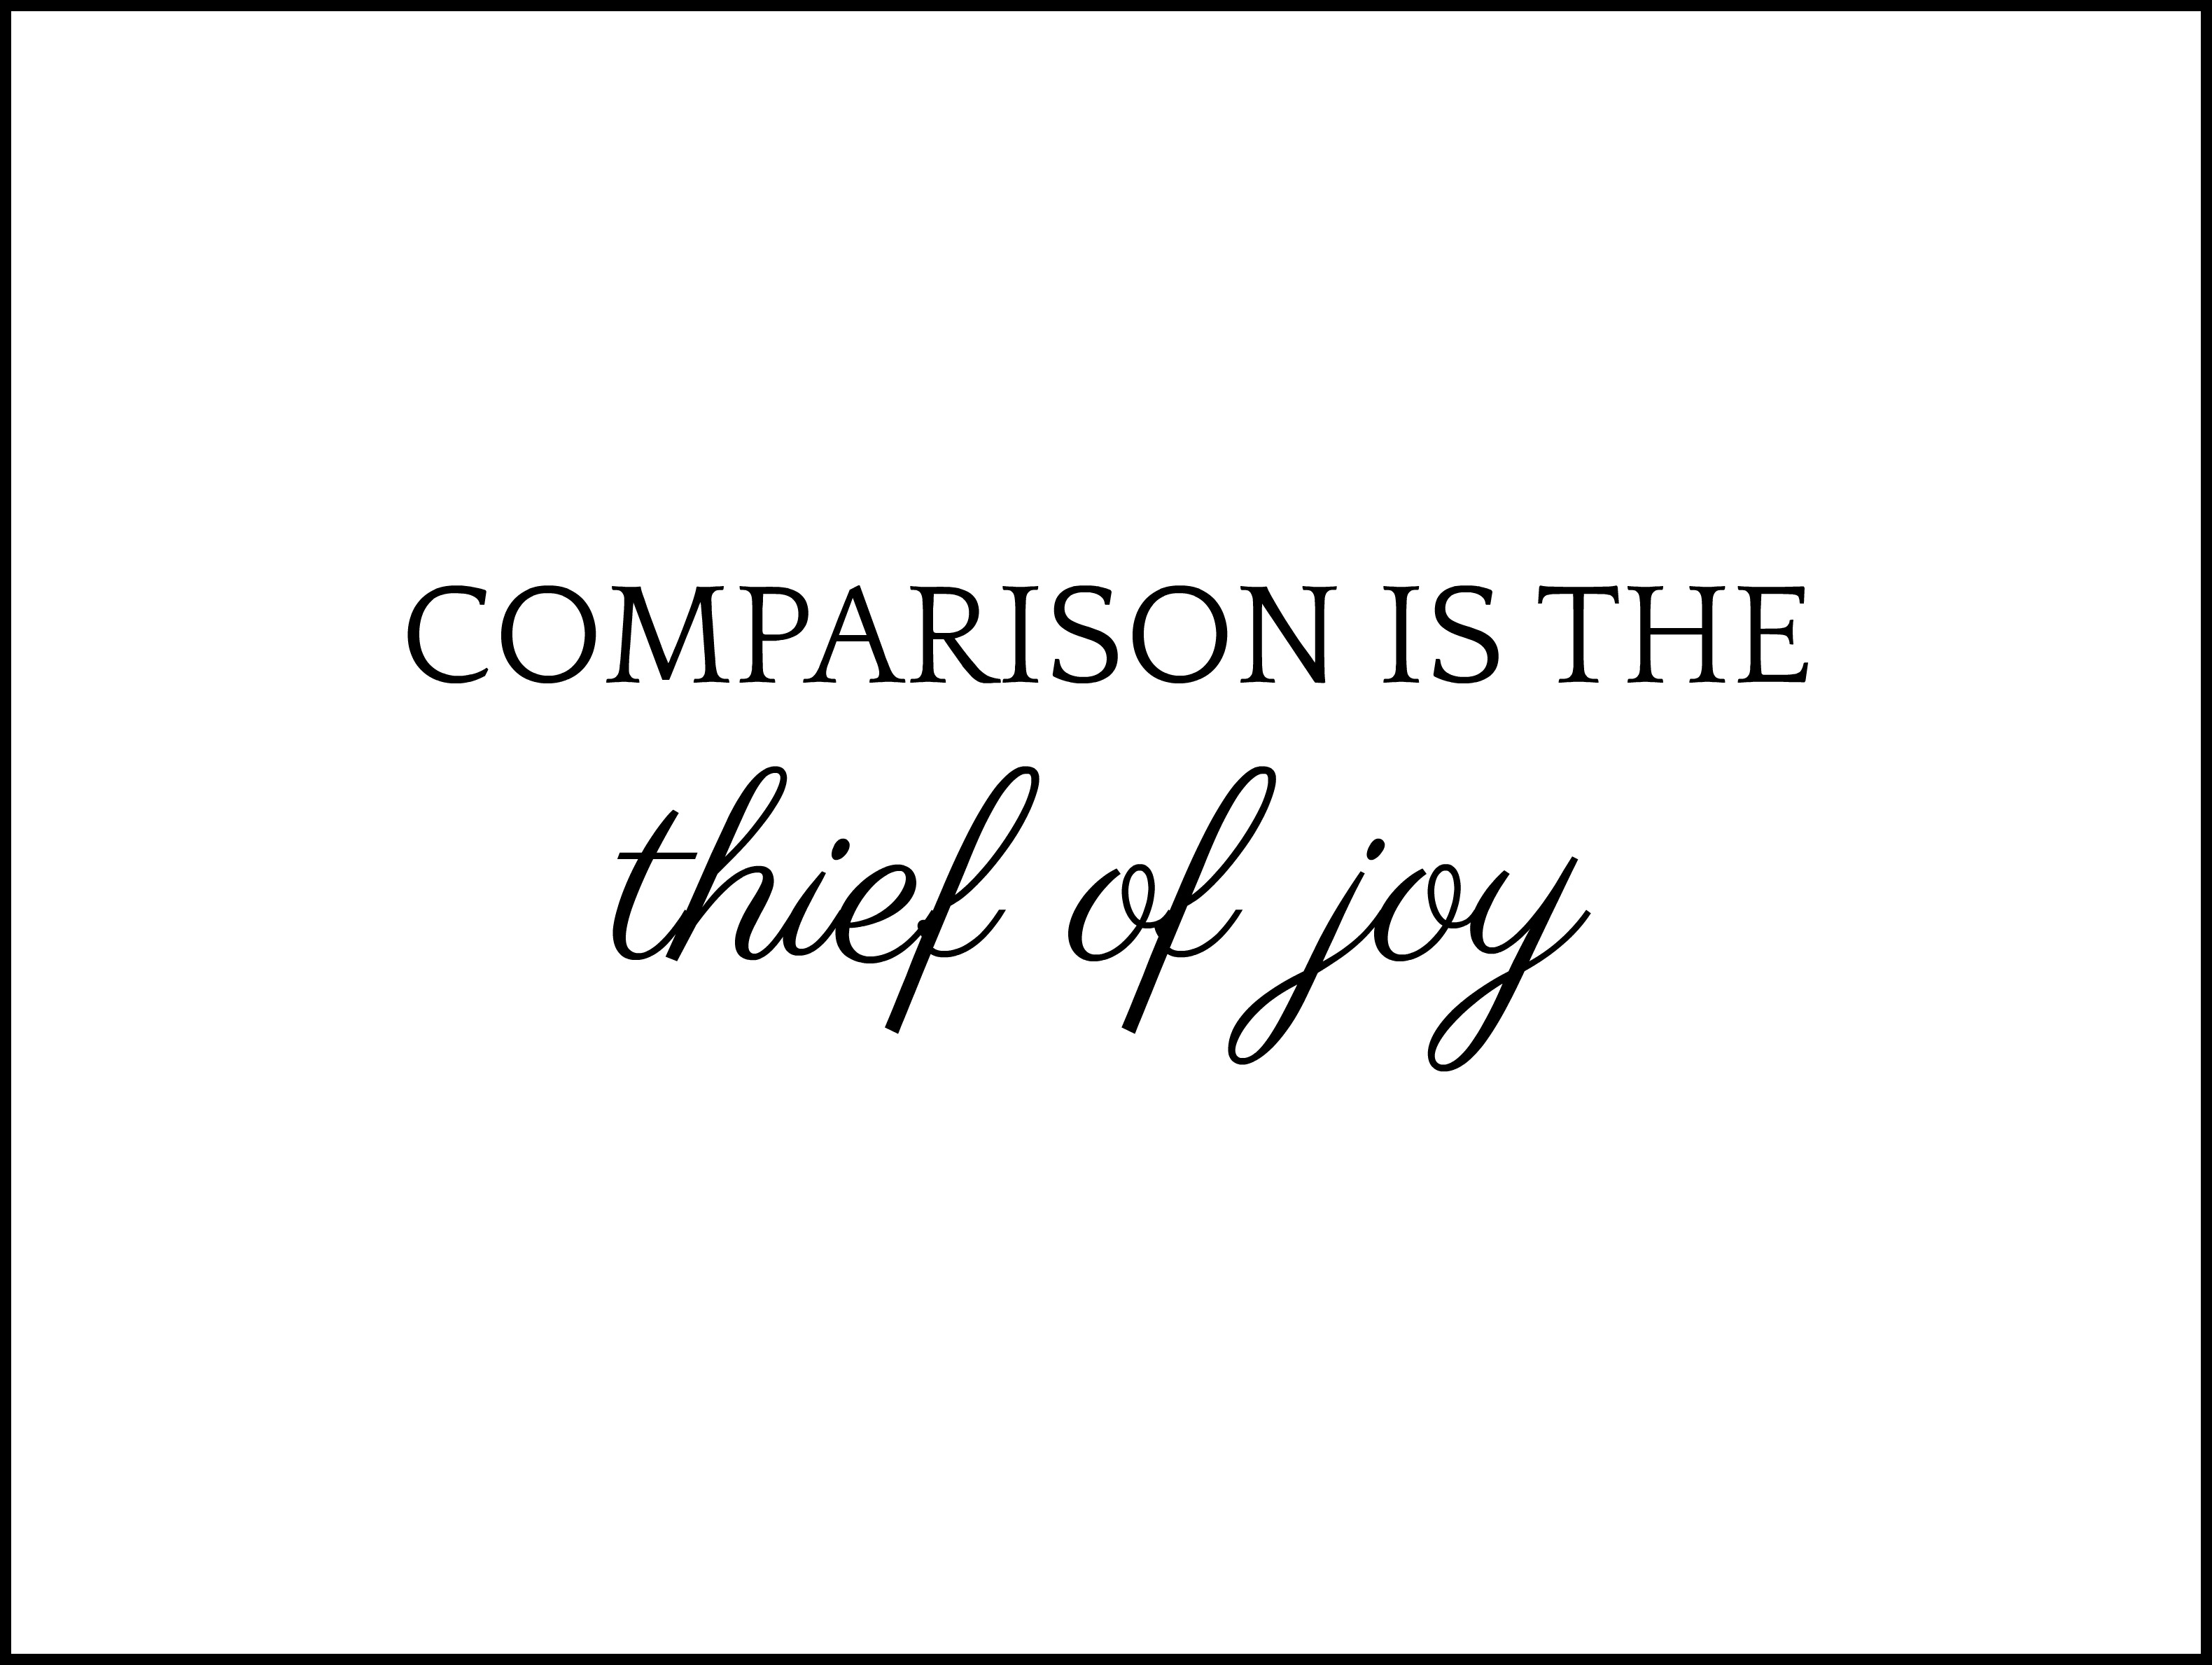 Comparison is the Thief of Joy